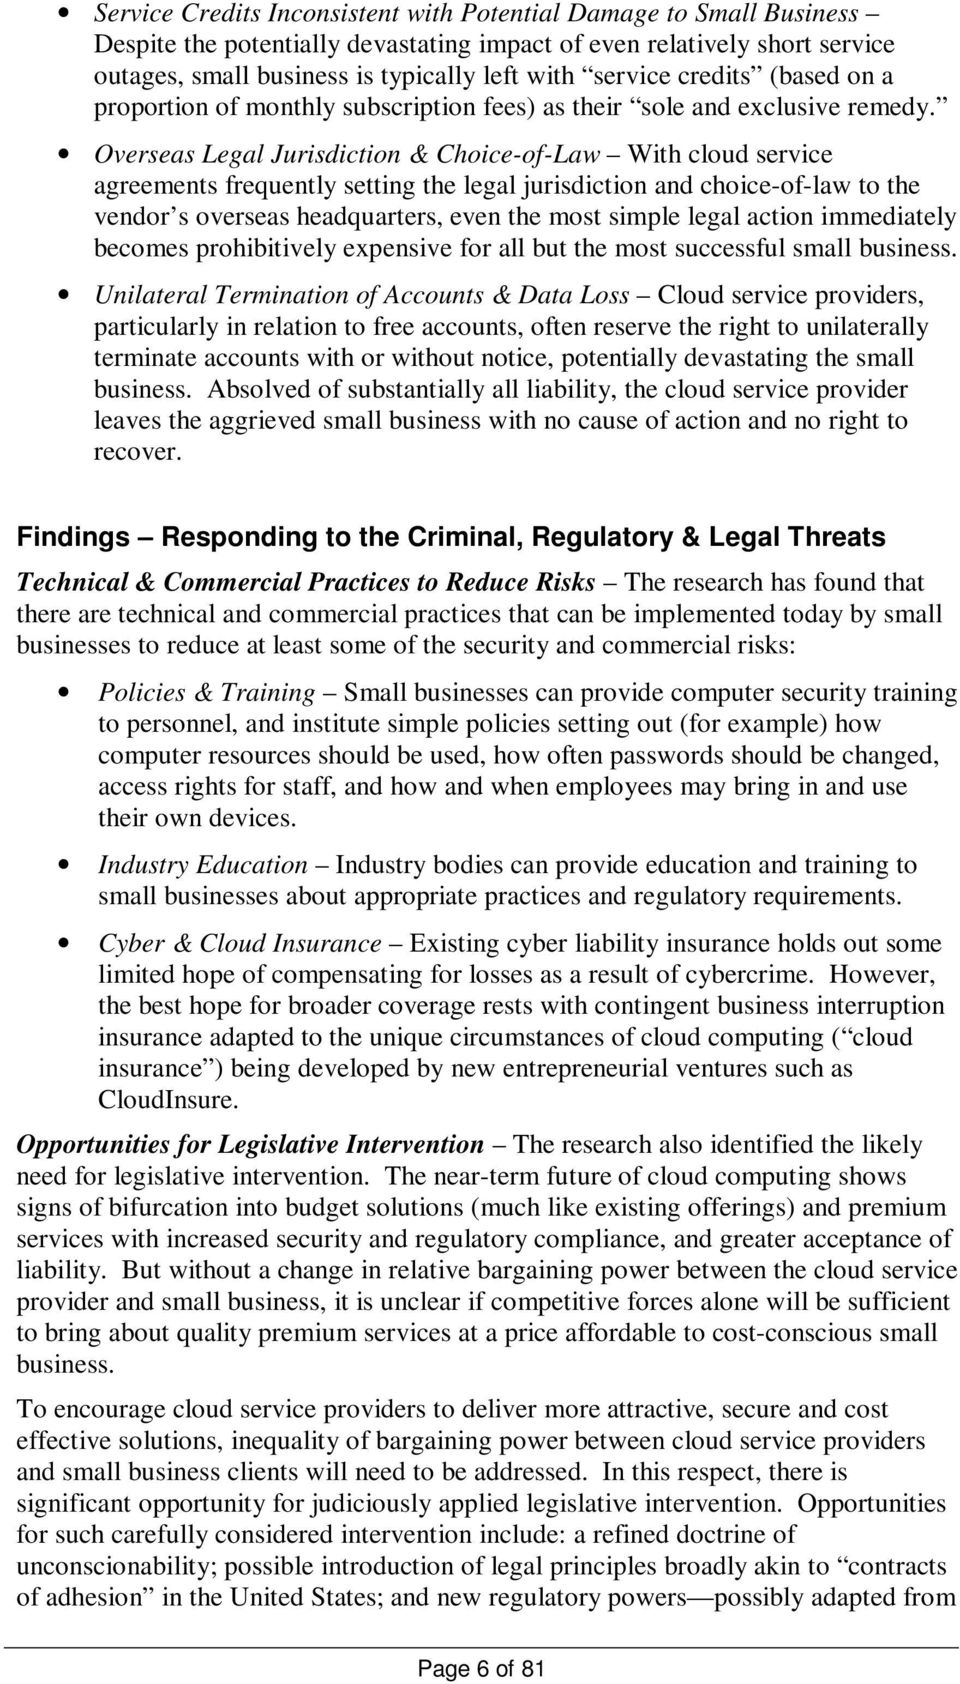 Overseas Legal Jurisdiction & Choice-of-Law With cloud service agreements frequently setting the legal jurisdiction and choice-of-law to the vendor s overseas headquarters, even the most simple legal